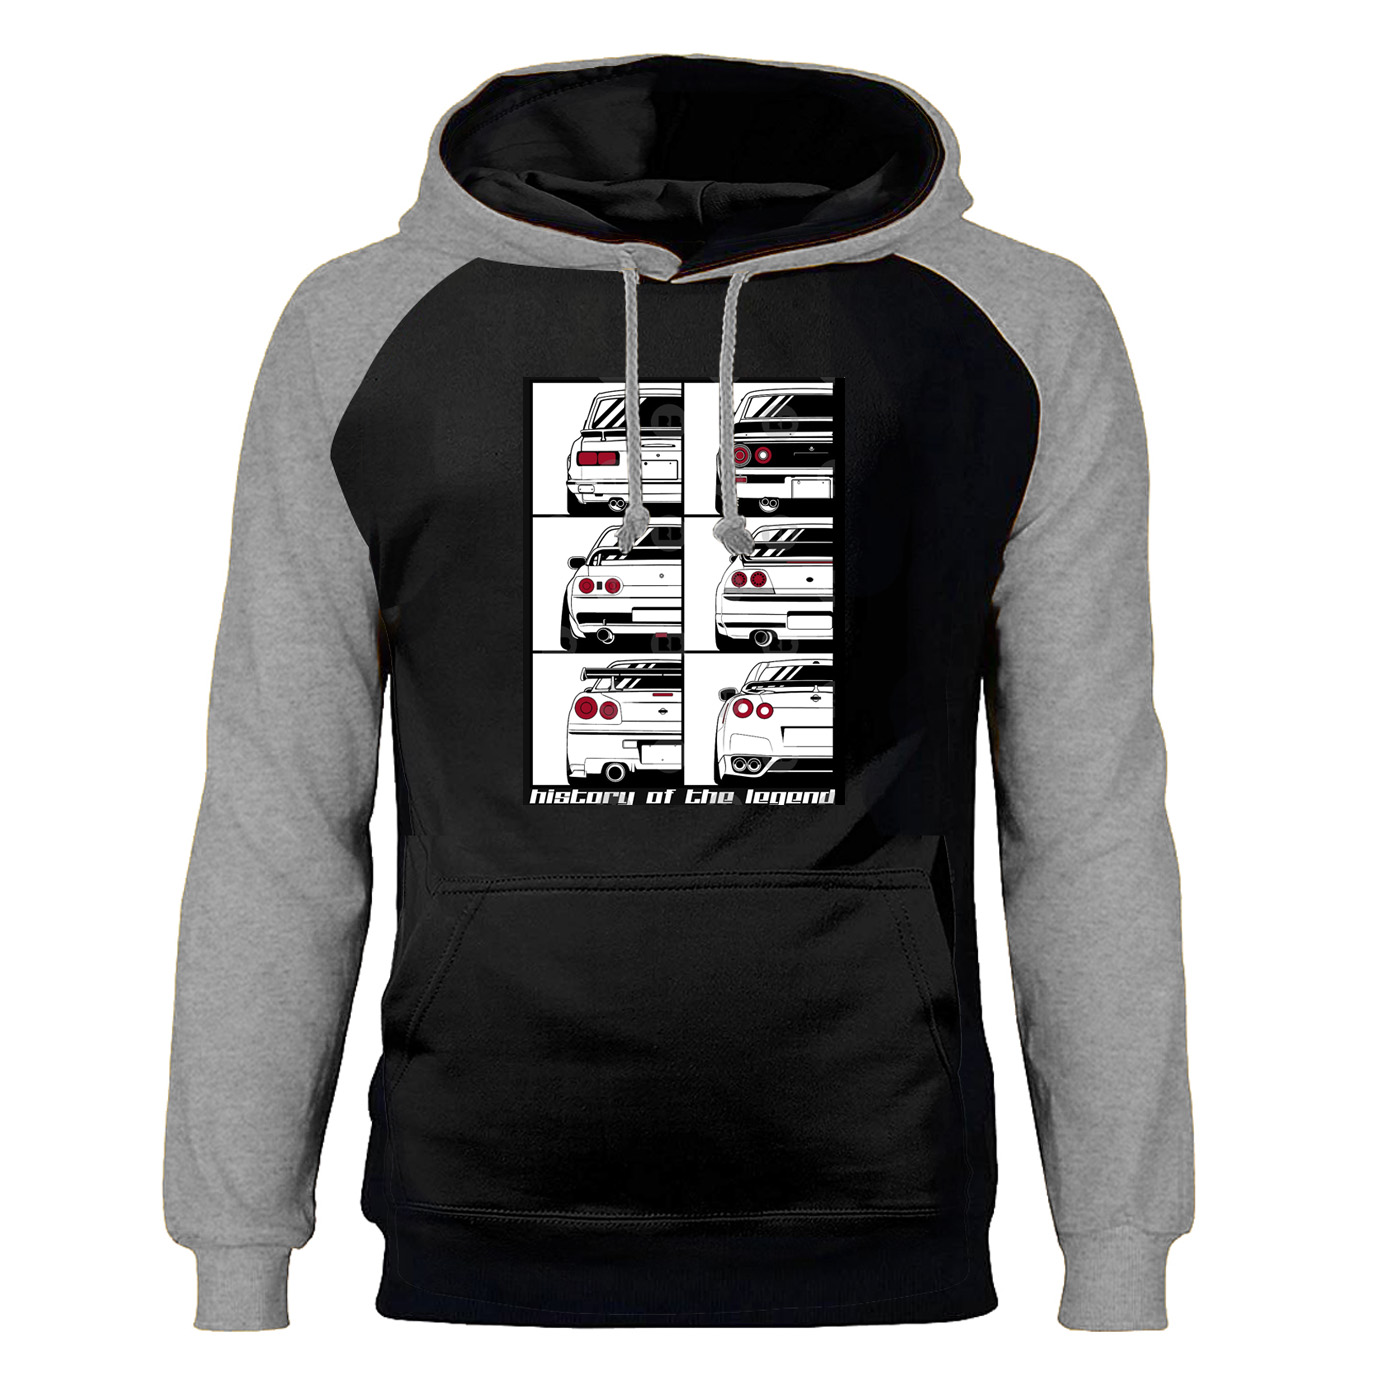 Novelty GTR Car Hoodies Men Raglan Cartoon Funny Skyline Graphic Hooded Sweatshirt Hoodie Streetwear Harajuku Workout Sportswear